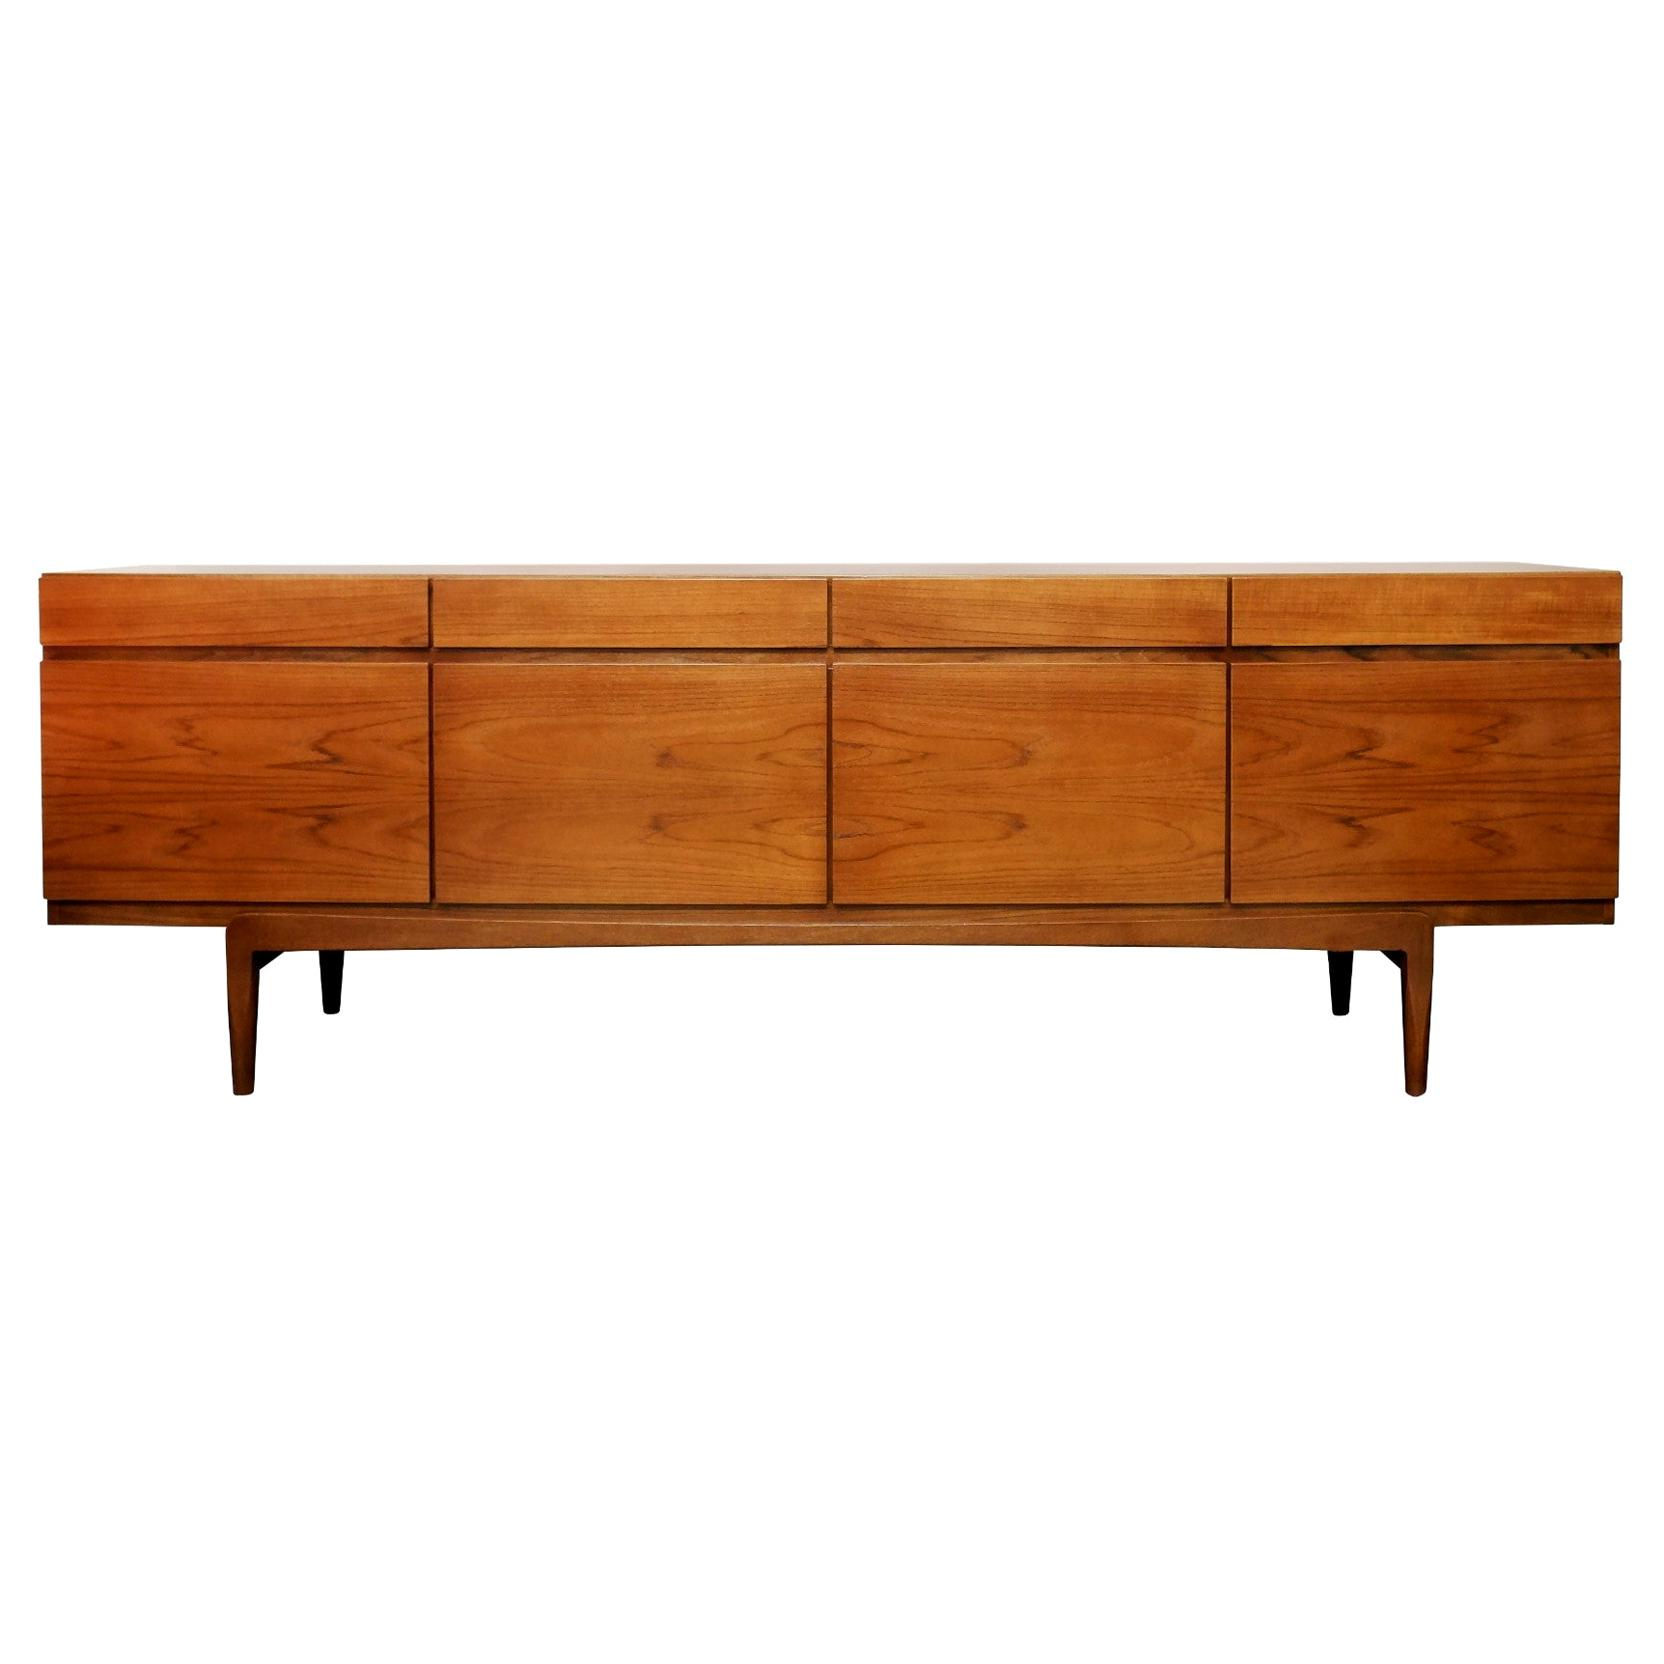 Watteeu Case Pieces And Storage Cabinets – 1stdibs For Weinberger Sideboards (View 17 of 20)